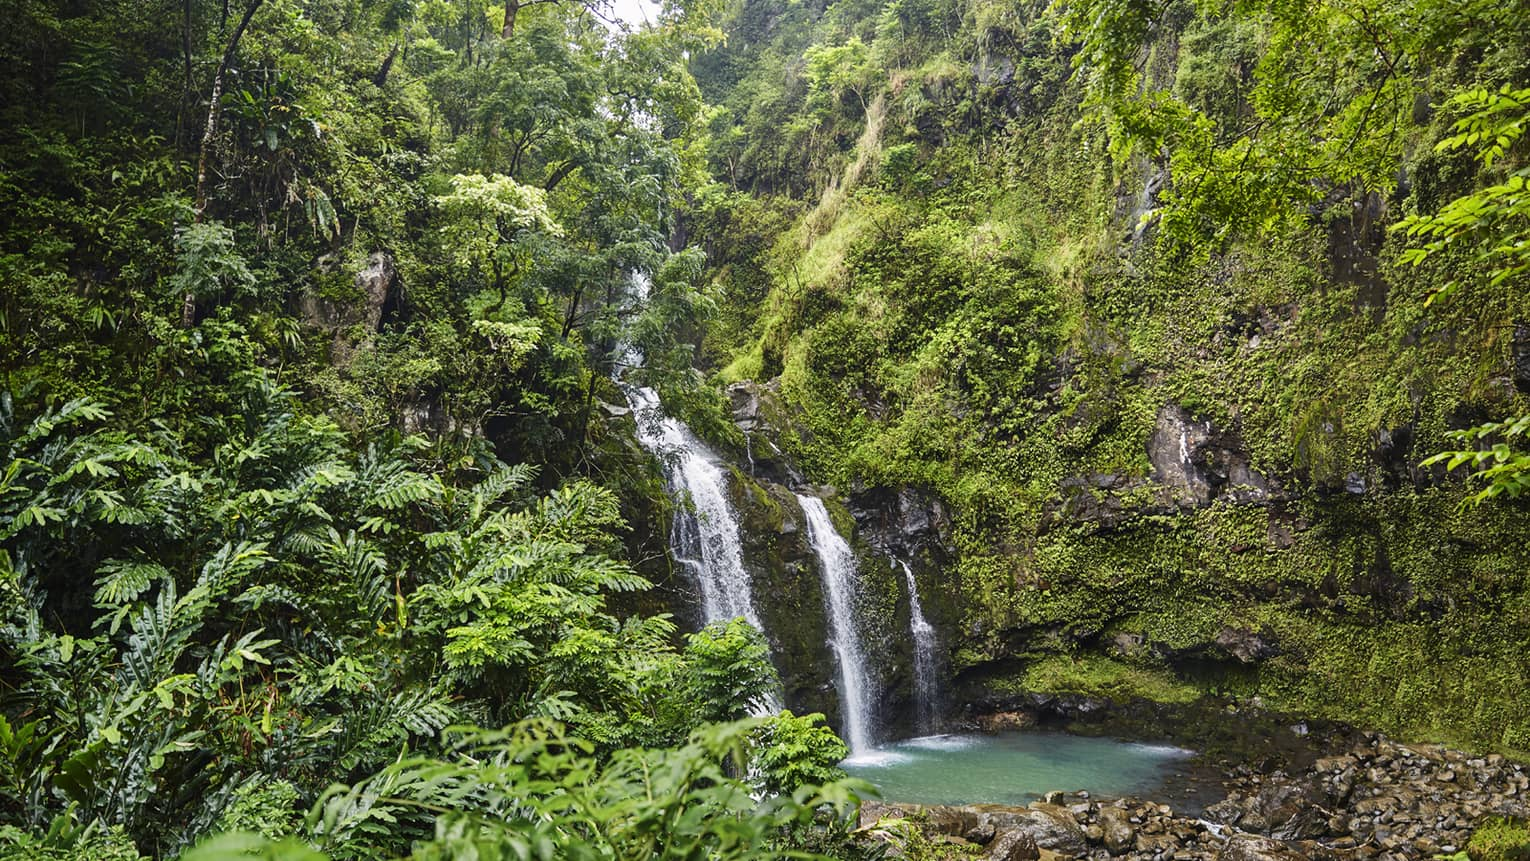 Waterfall flows over rock surrounded by lush green tropical forest